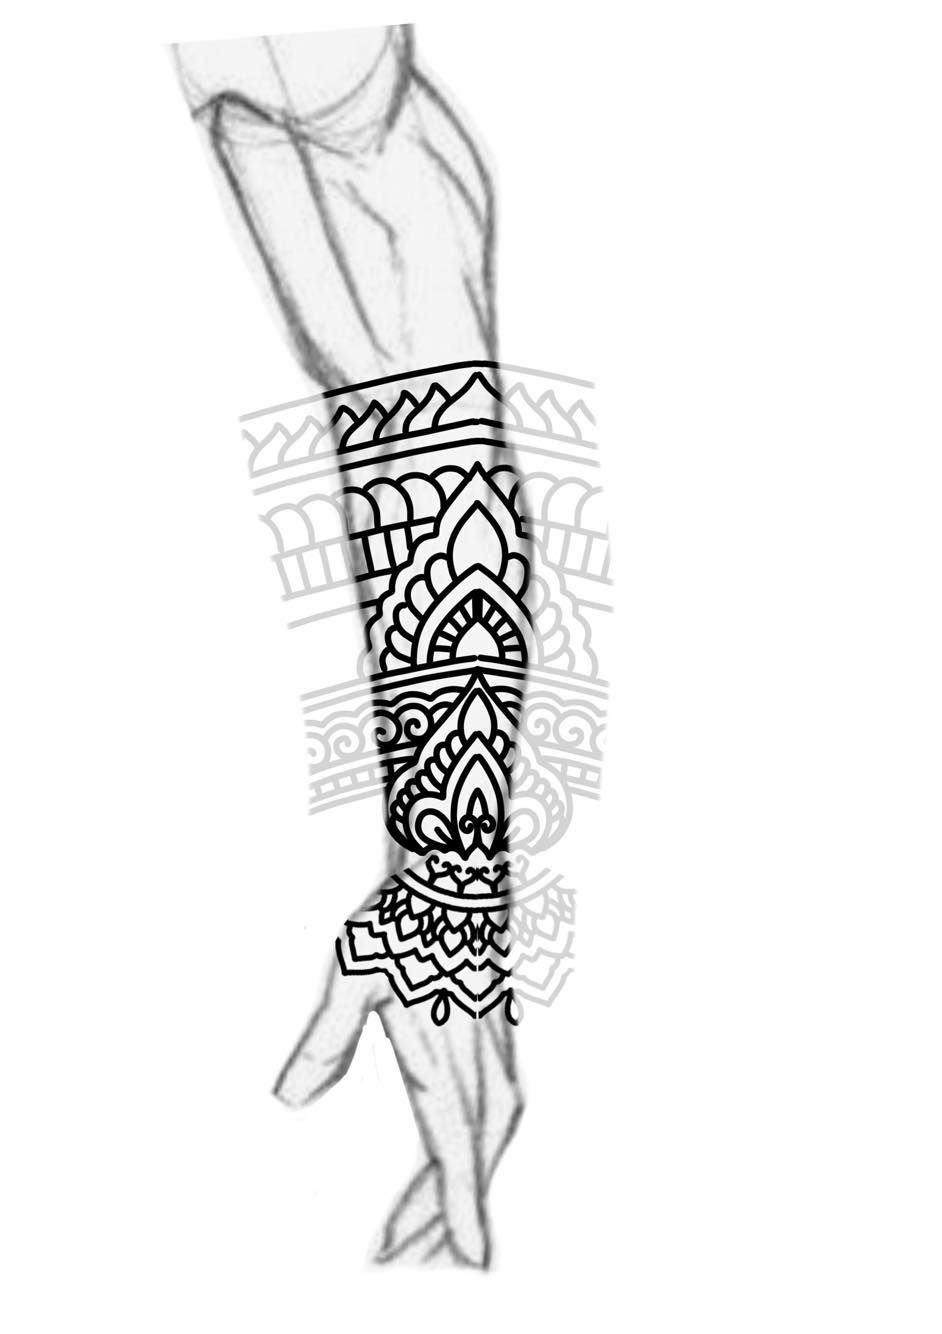 Blackwork Forearm Sleeve Mandala Ornamental Bold Lines Tattoo Design Electronic Circuit Board Full Male Follow Me On My Blog To Join All Tips And Tricks About Tattoos